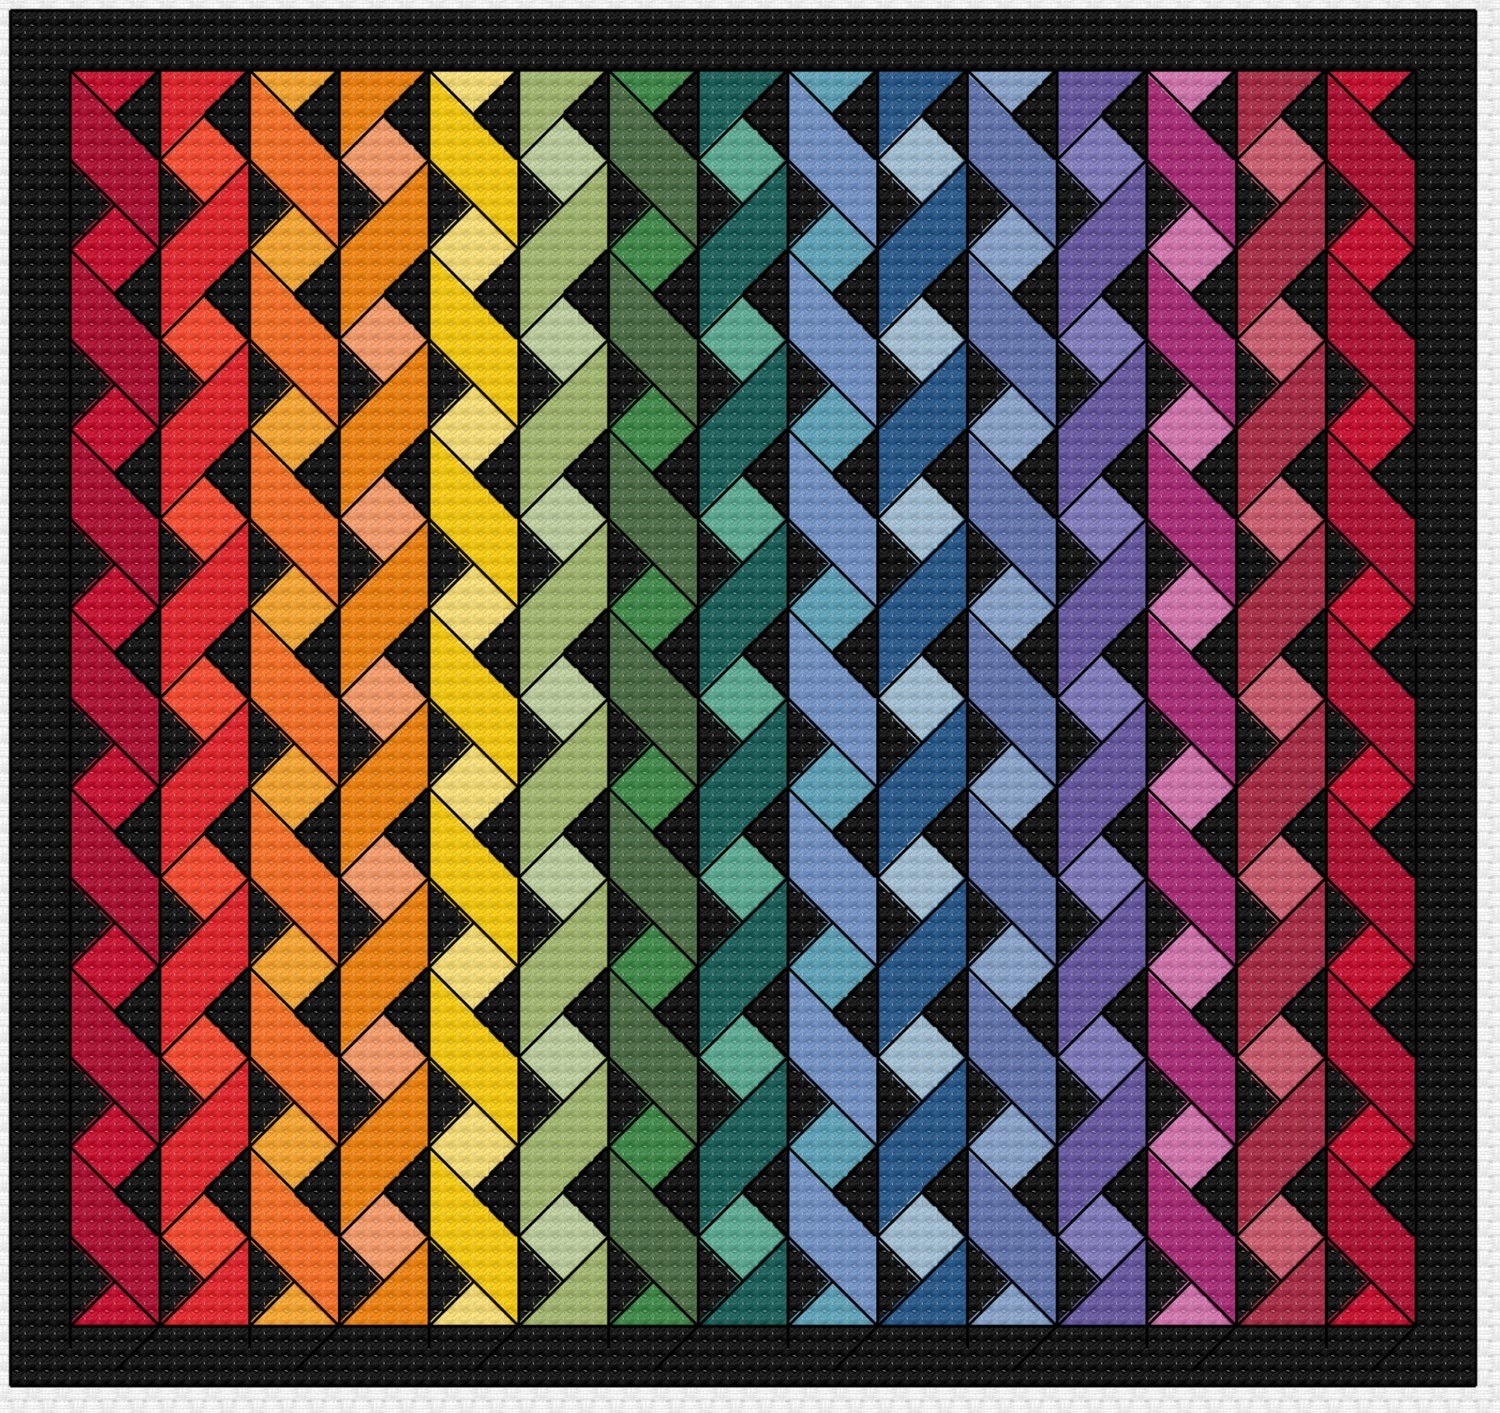 Quilting Patterns Stitching : Cross Stitch Pattern Quilt Block Ribbon Quilt